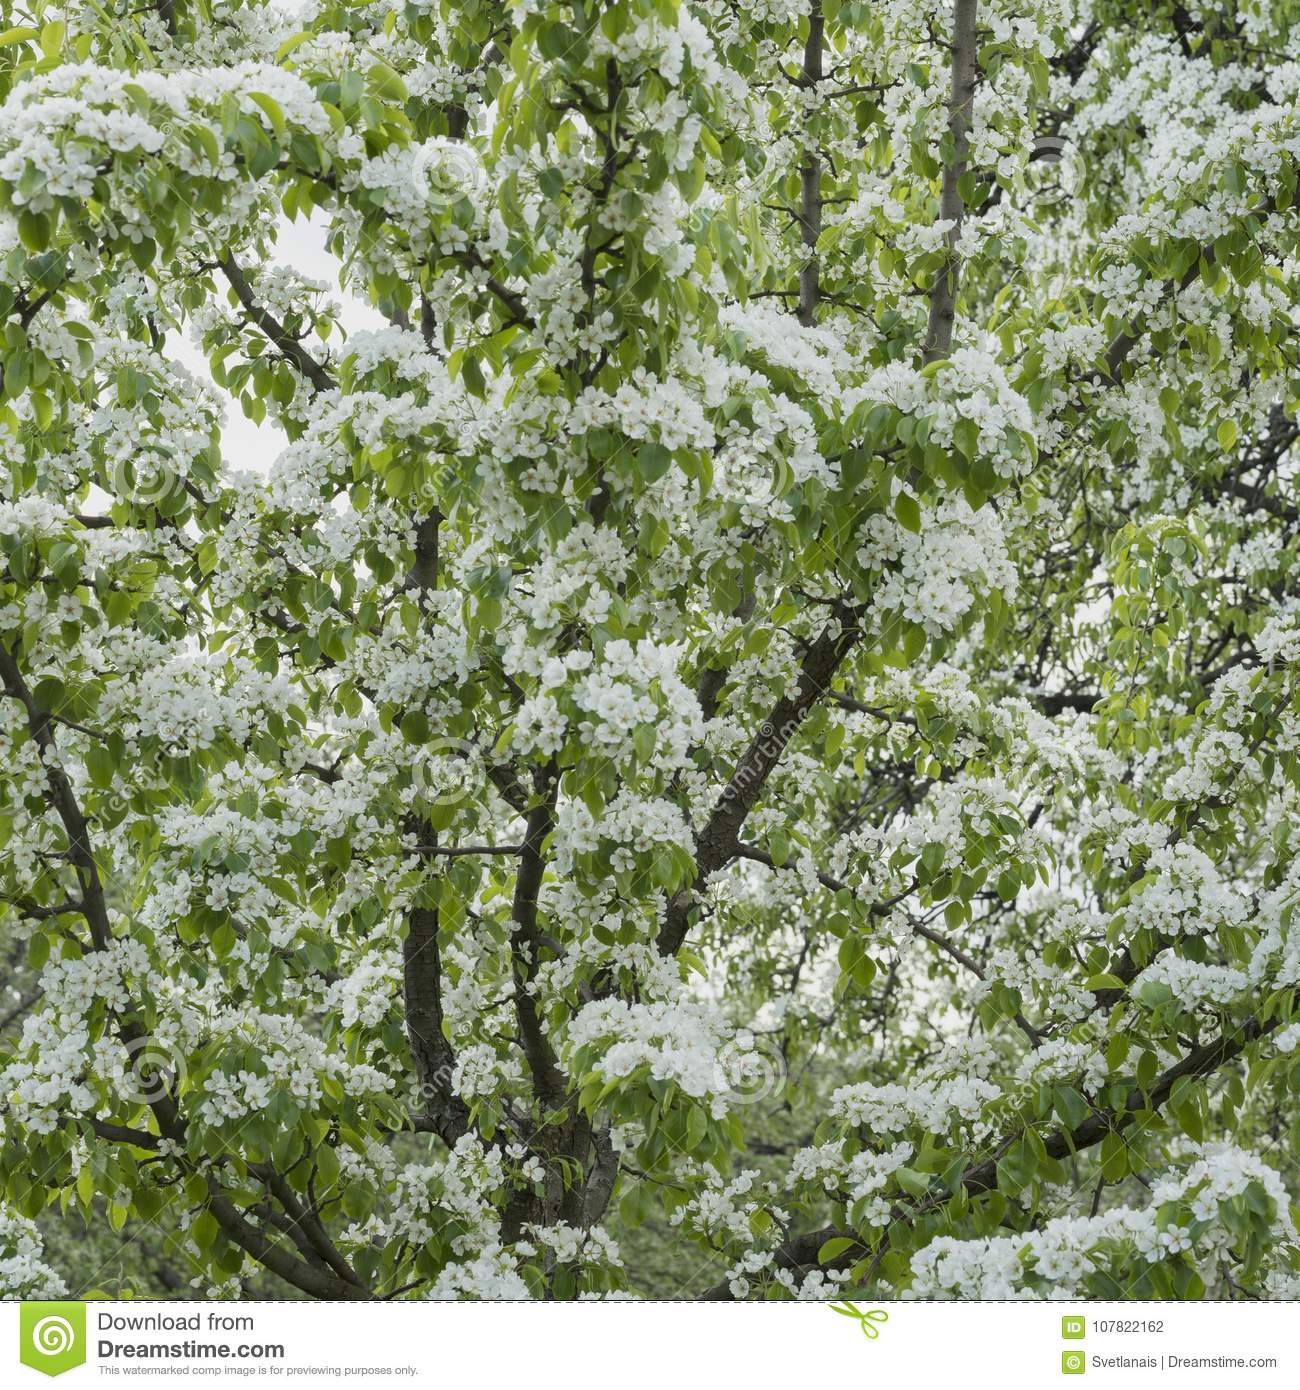 Abundantly Blooming Spring Branches Of Fruit Tree With White Flowers